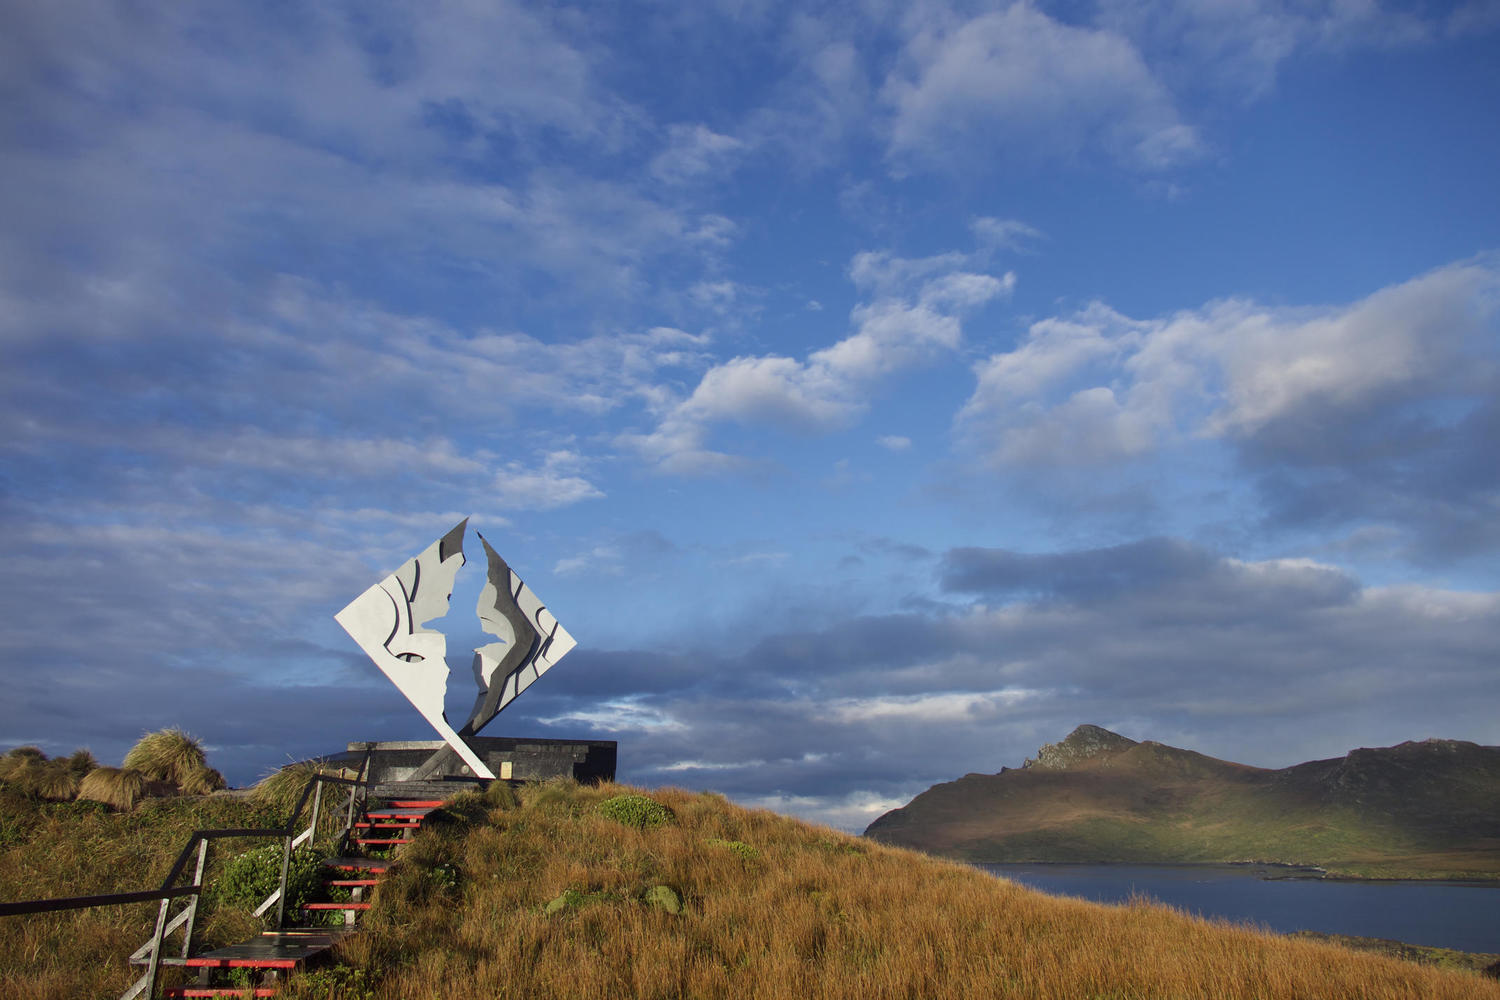 The monument at Cape Horn in the early morning light